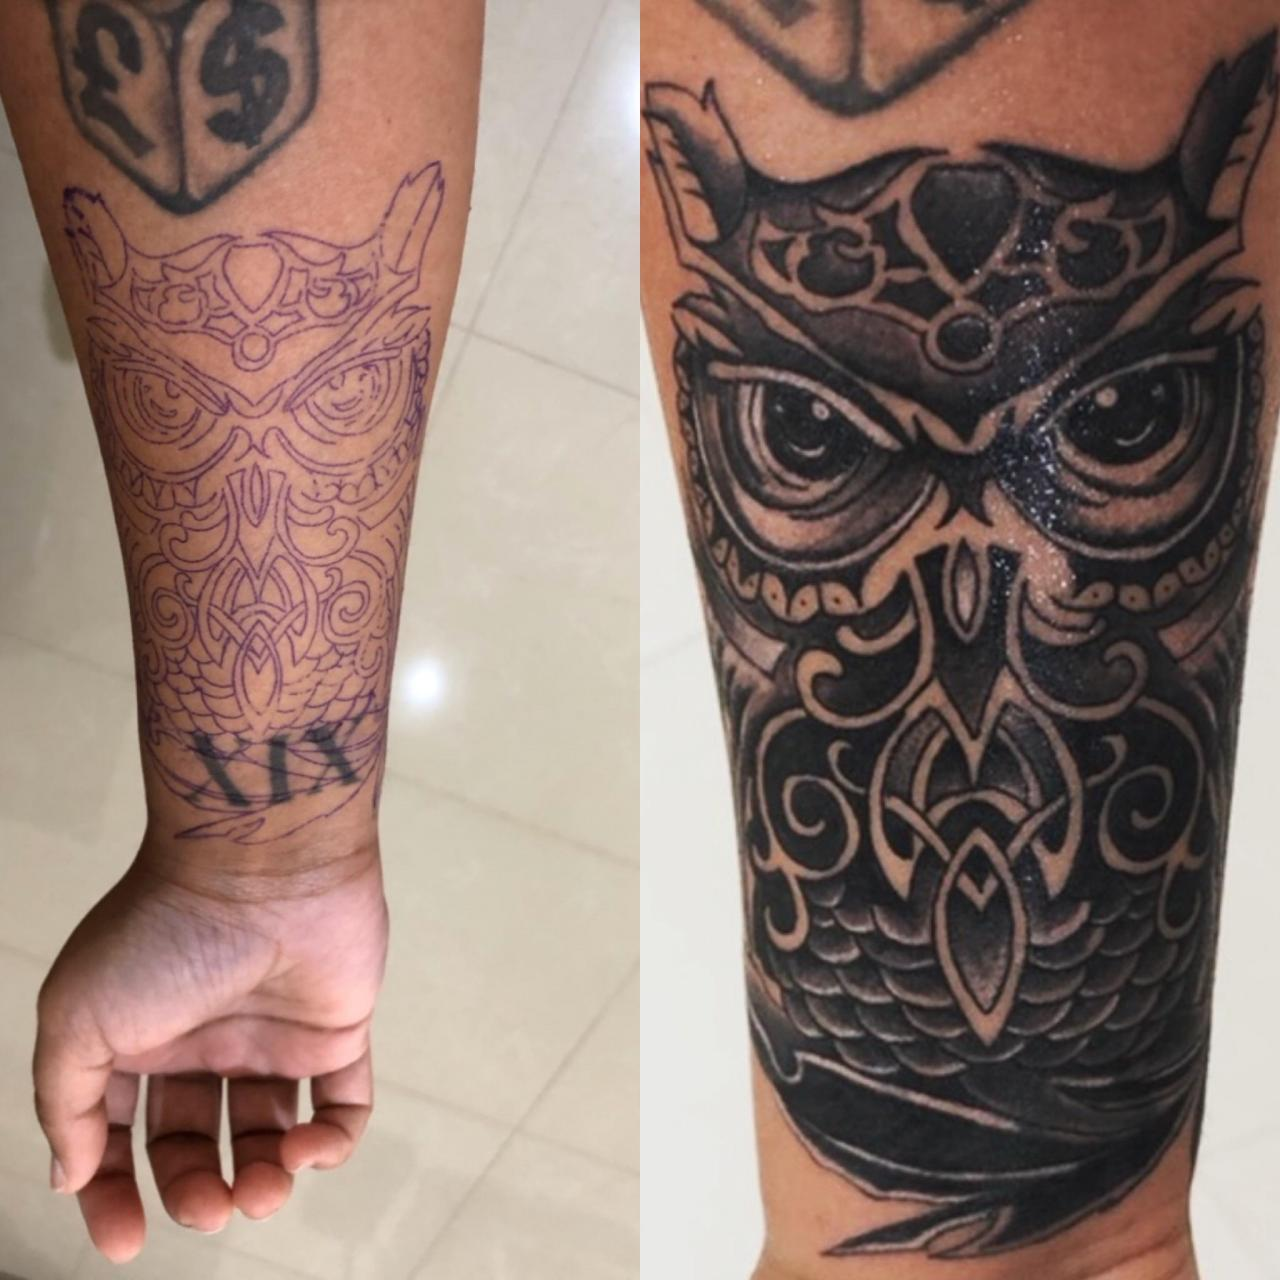 My lower arm cover up done by a Hong Kong artist called Ujo